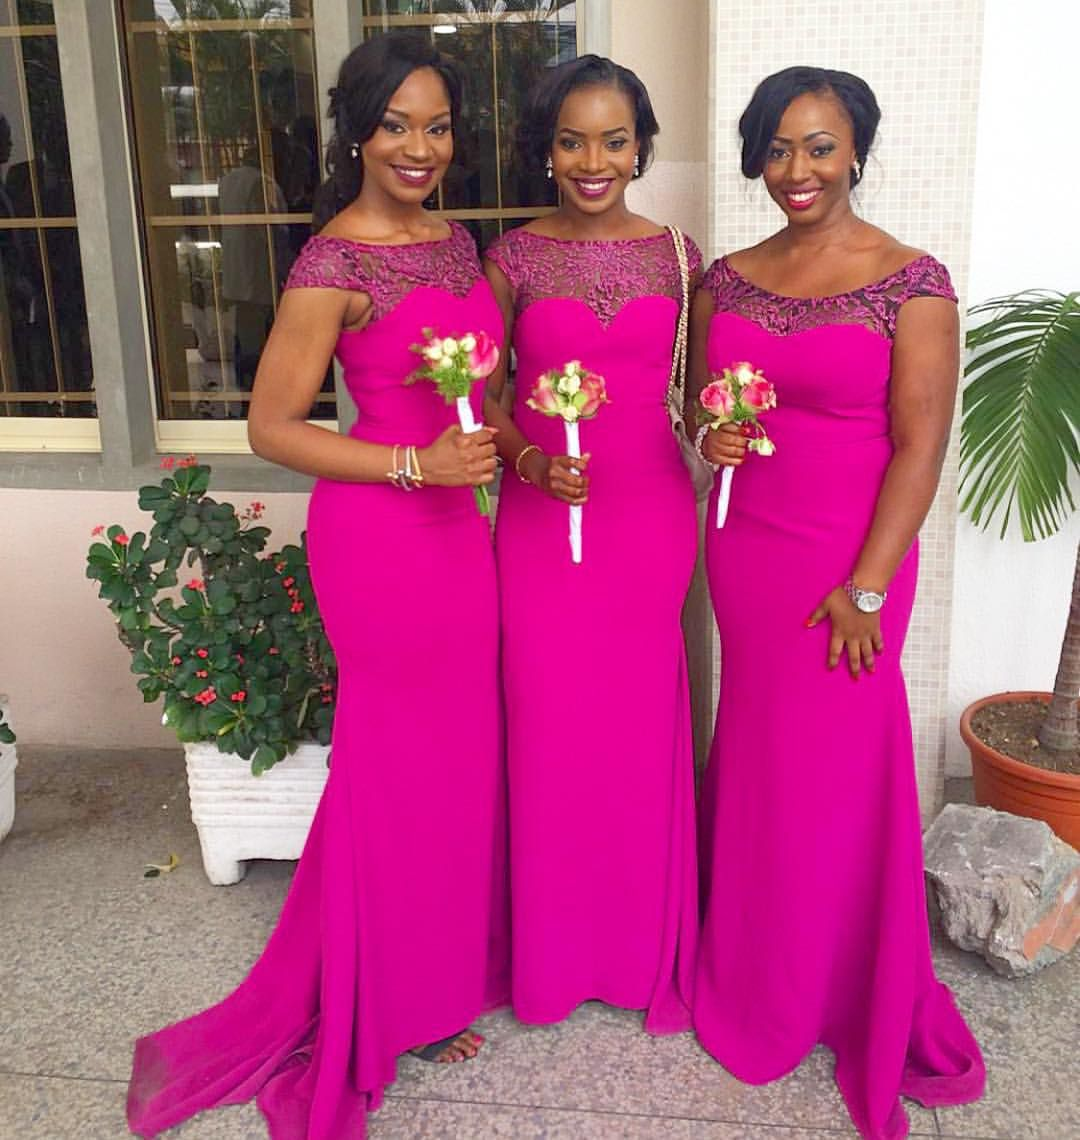 chiamy45 on bridesmaids duty ! #NWbms #NigerianWedding #Bridesmaids ...